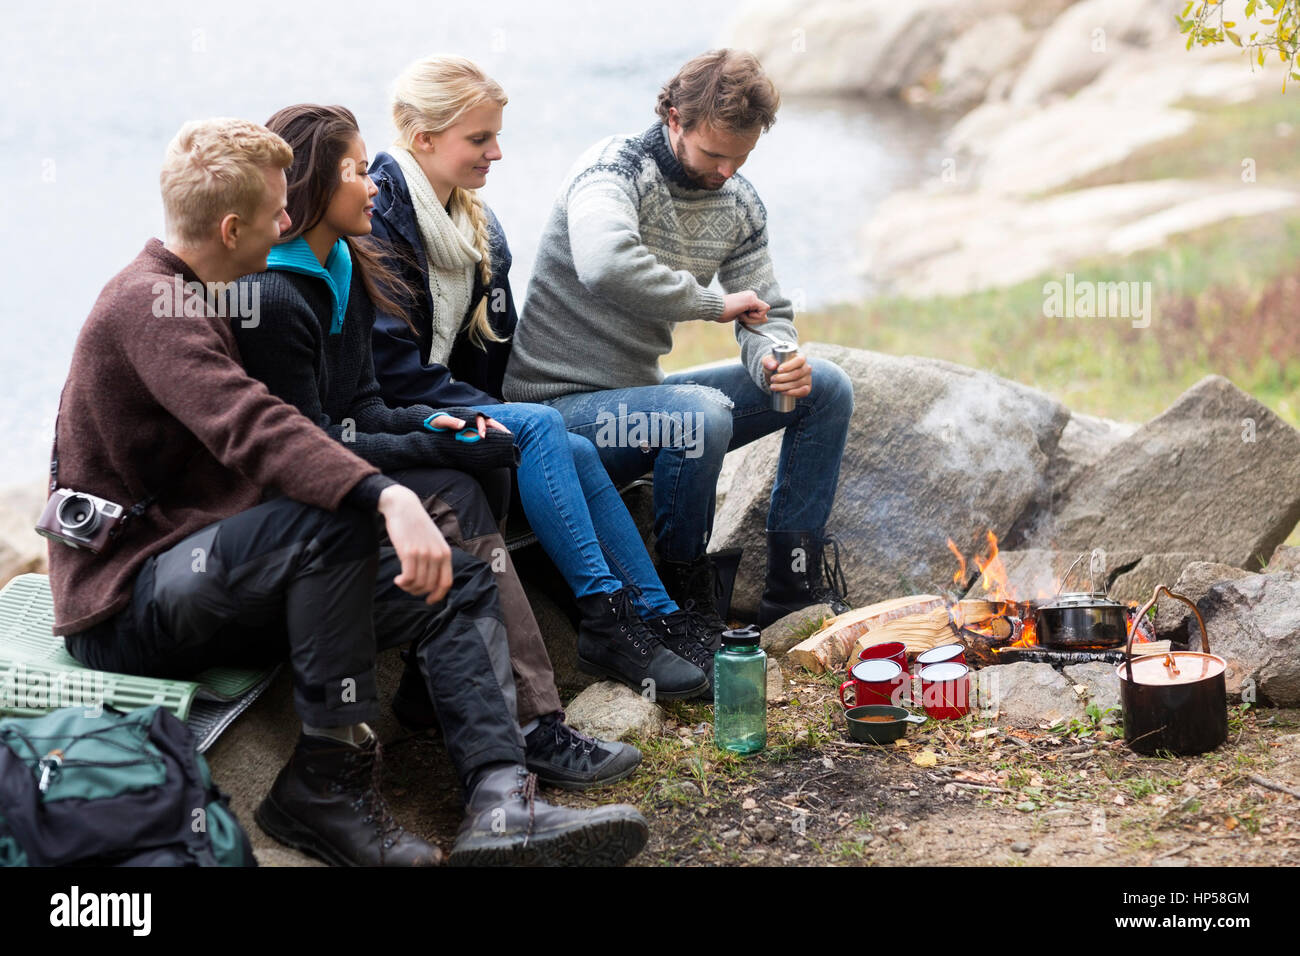 Friends Looking At Man Grinding Coffee At Campsite - Stock Image